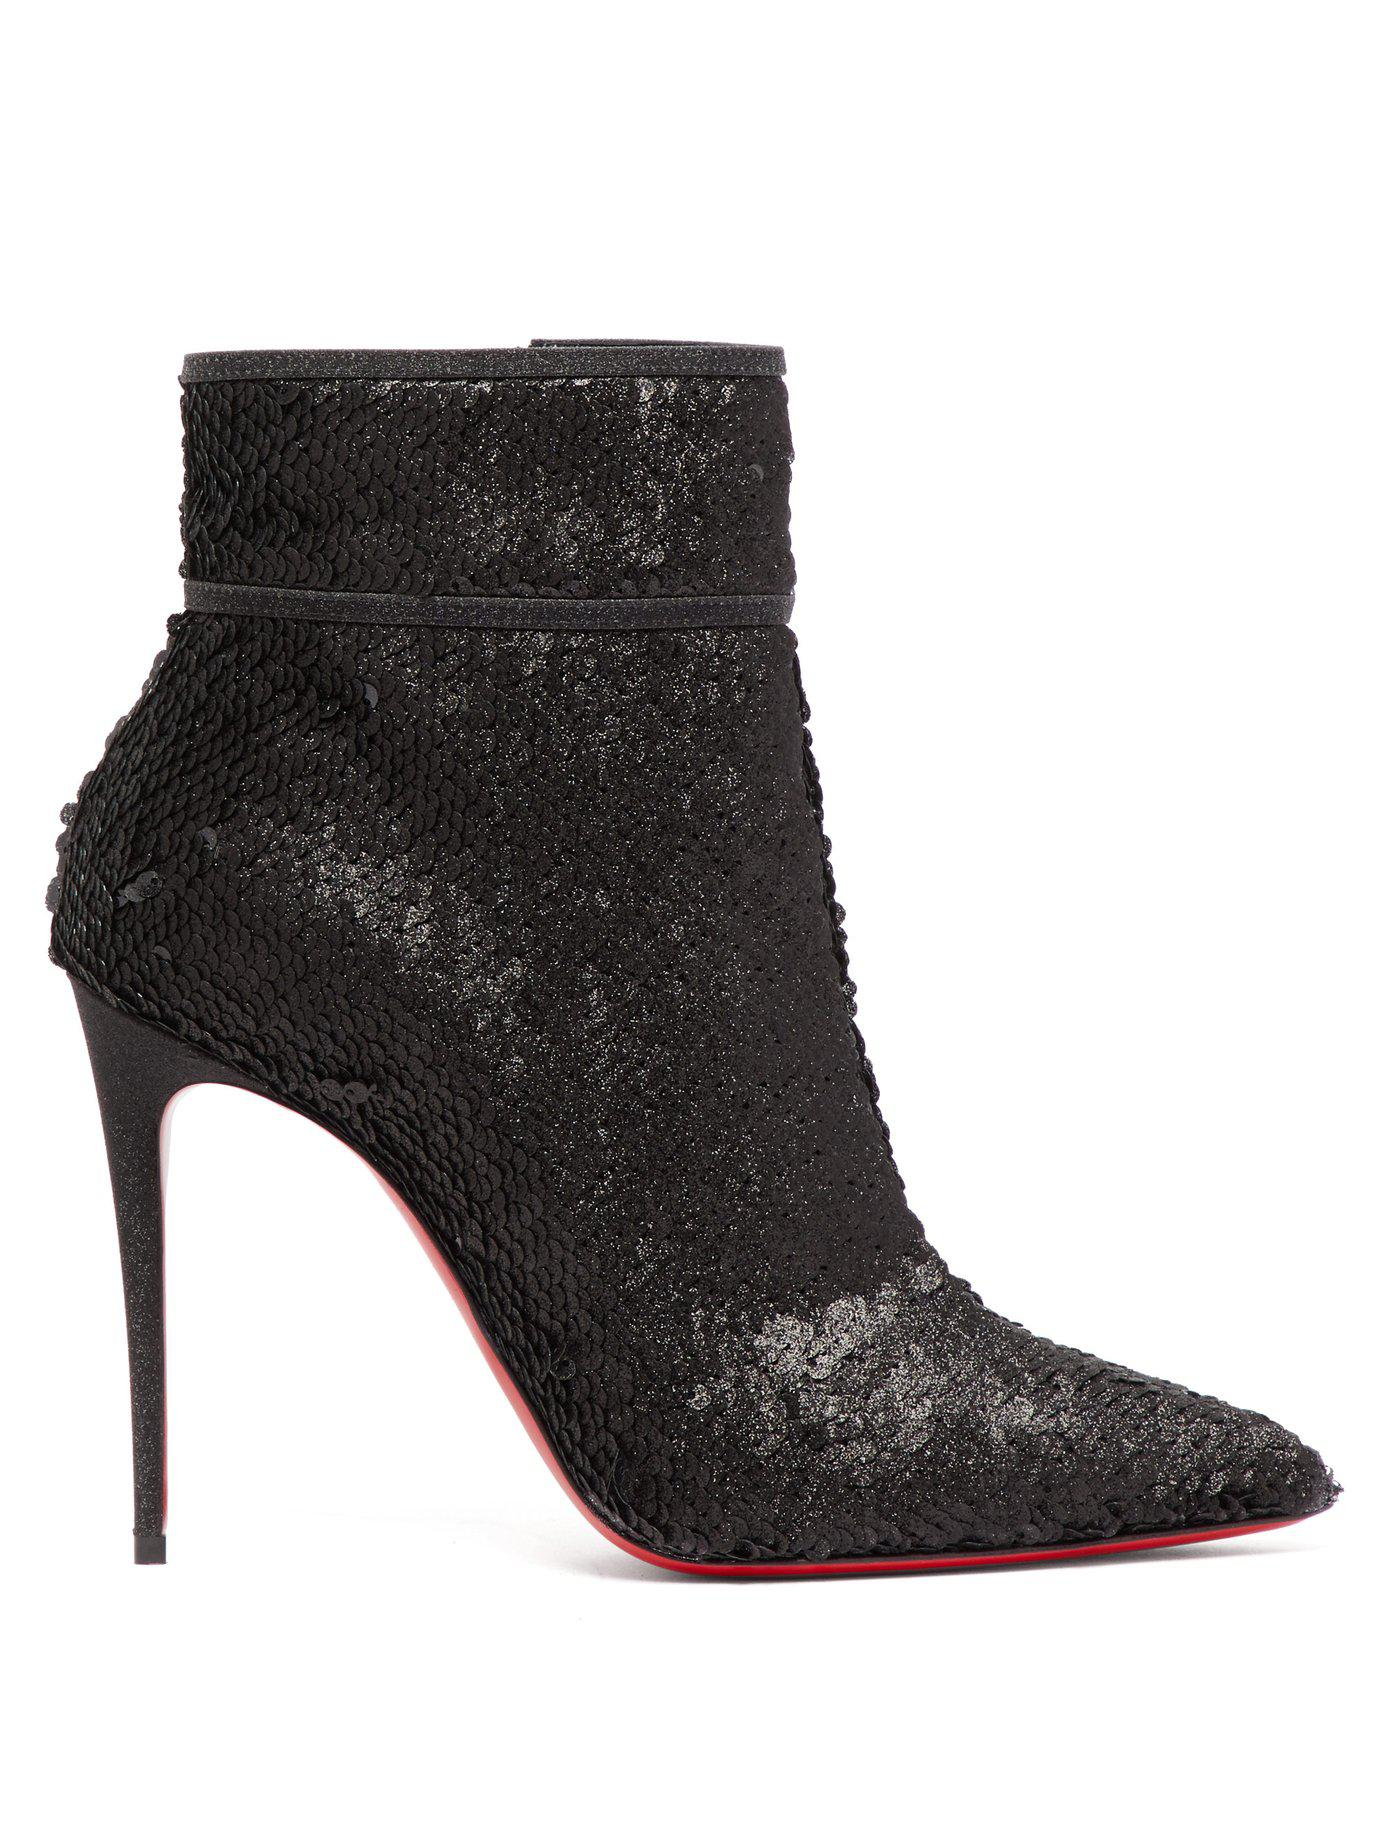 1363672e4e79 Lyst - Christian Louboutin Moulakate 100 Sequin Ankle Boots in Black